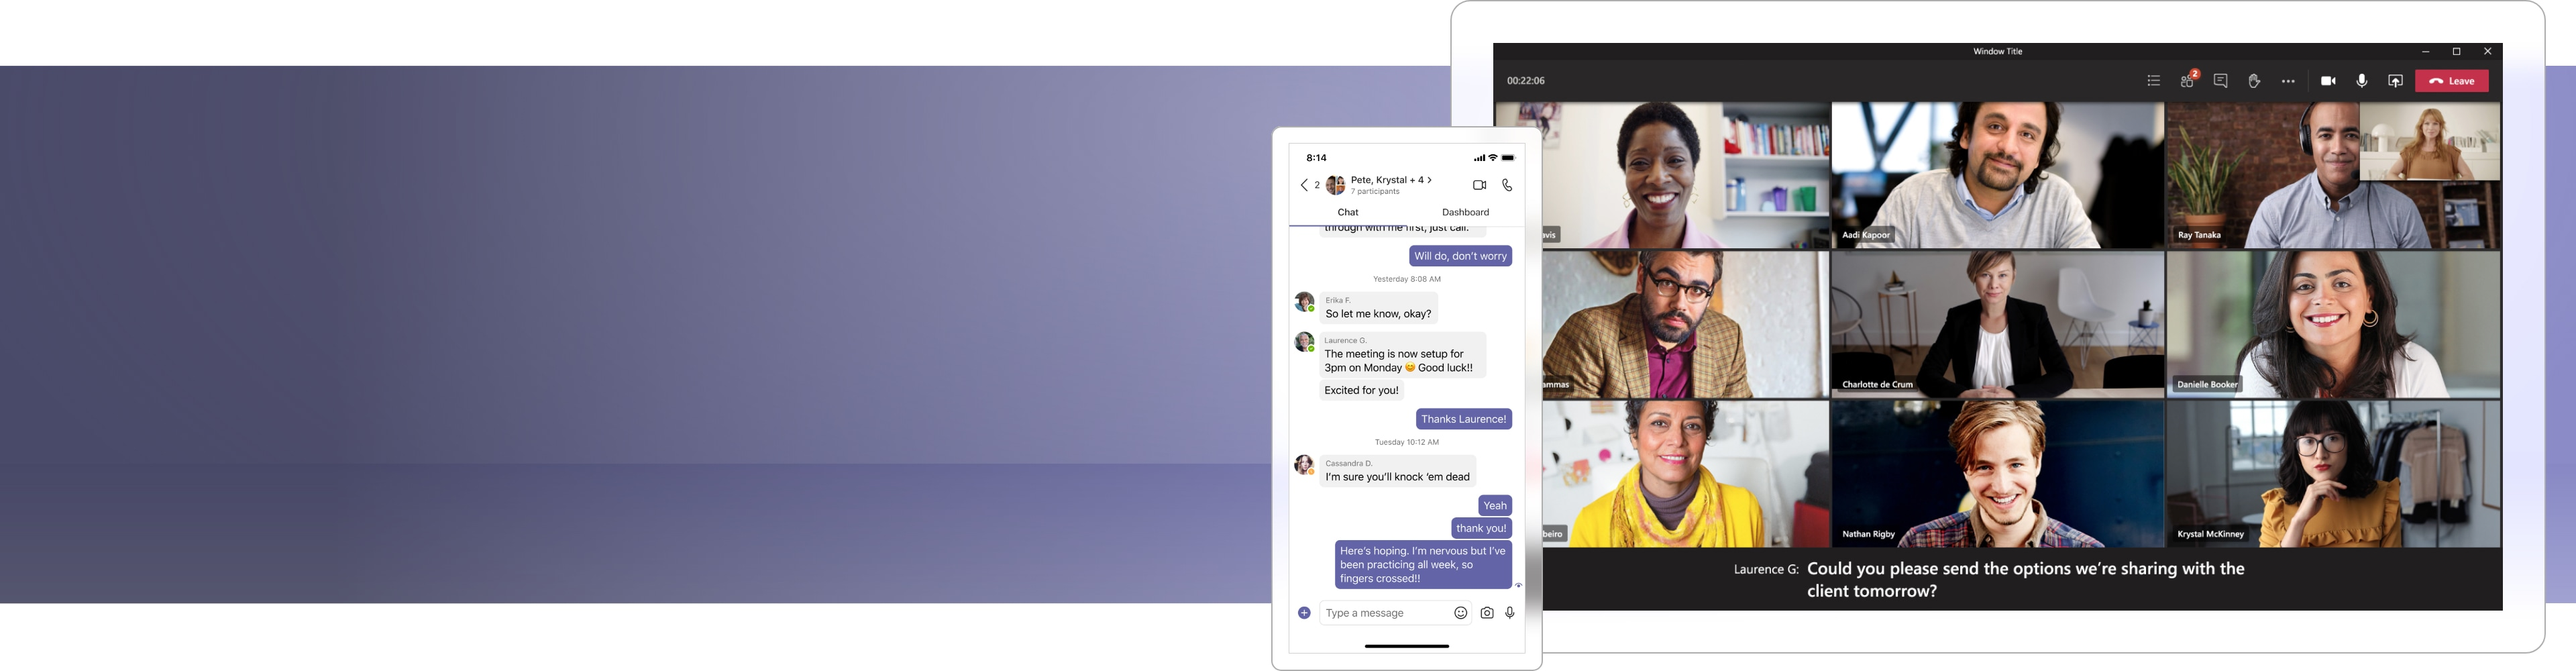 A Teams video call with 9 participants and a pop-out mobile window on the left showing a text conversation in Teams.